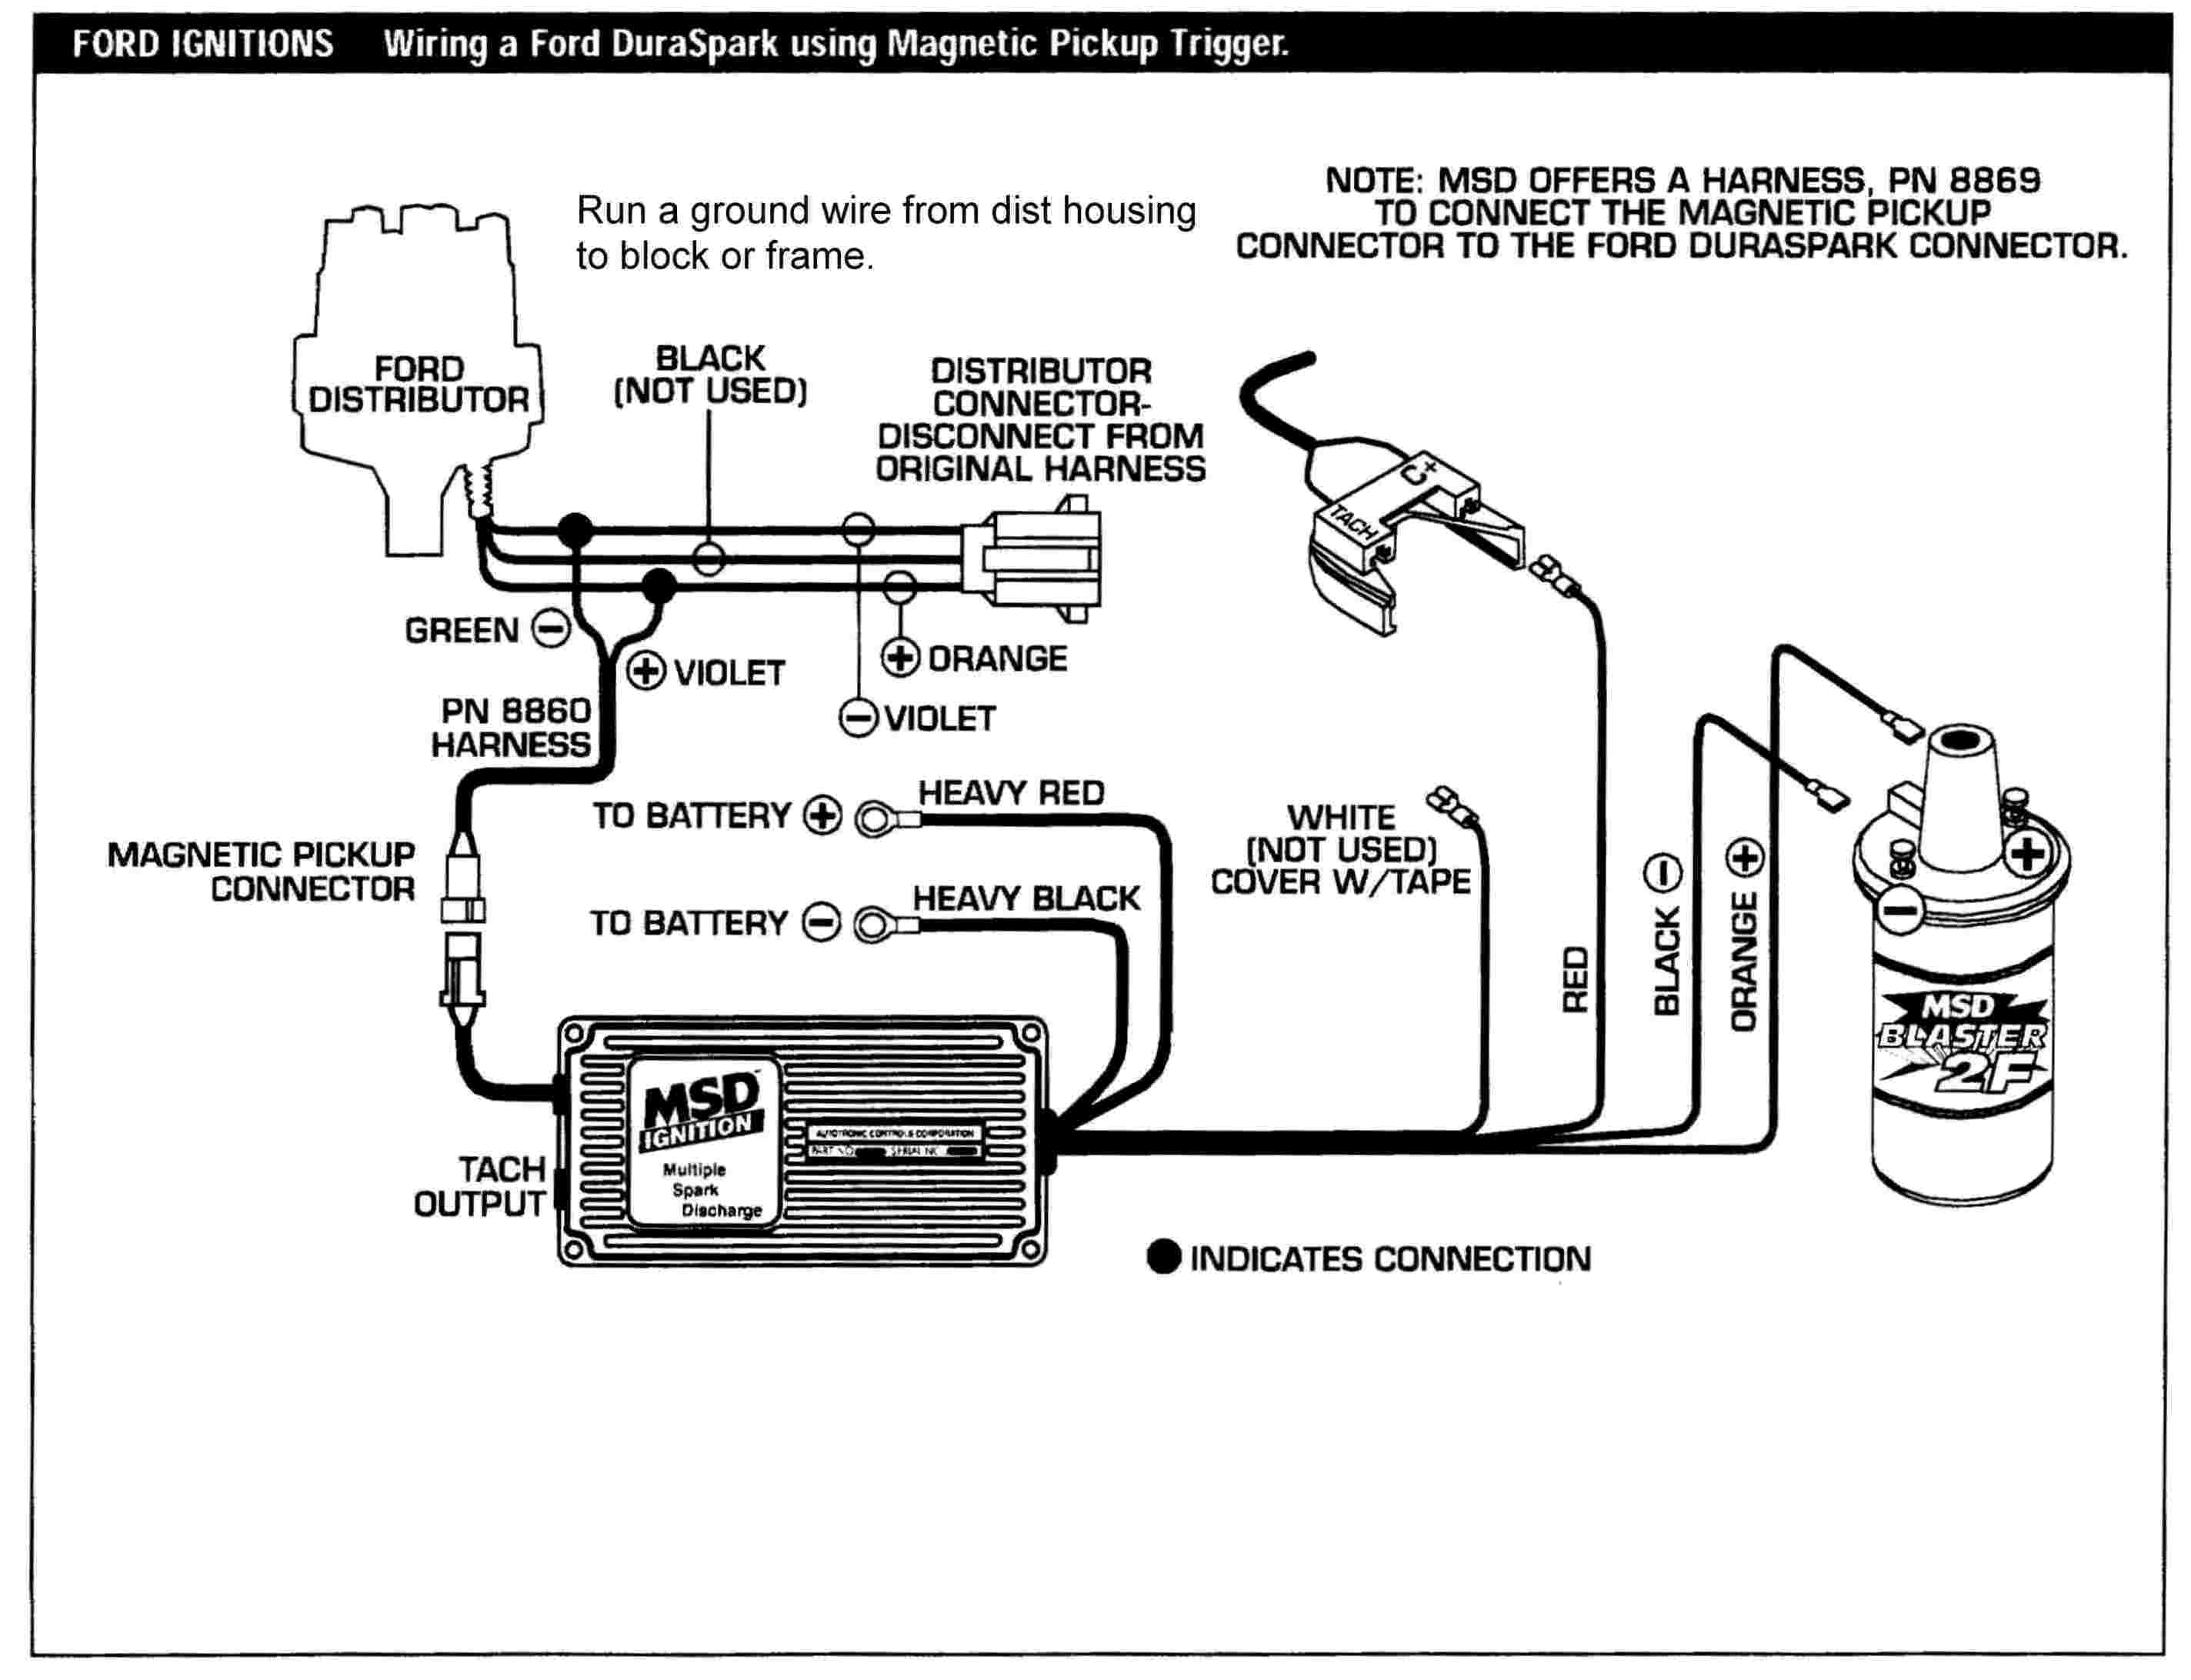 Ford Duraspark MSD schematic automotive component engineering ford msd wiring diagram at gsmx.co